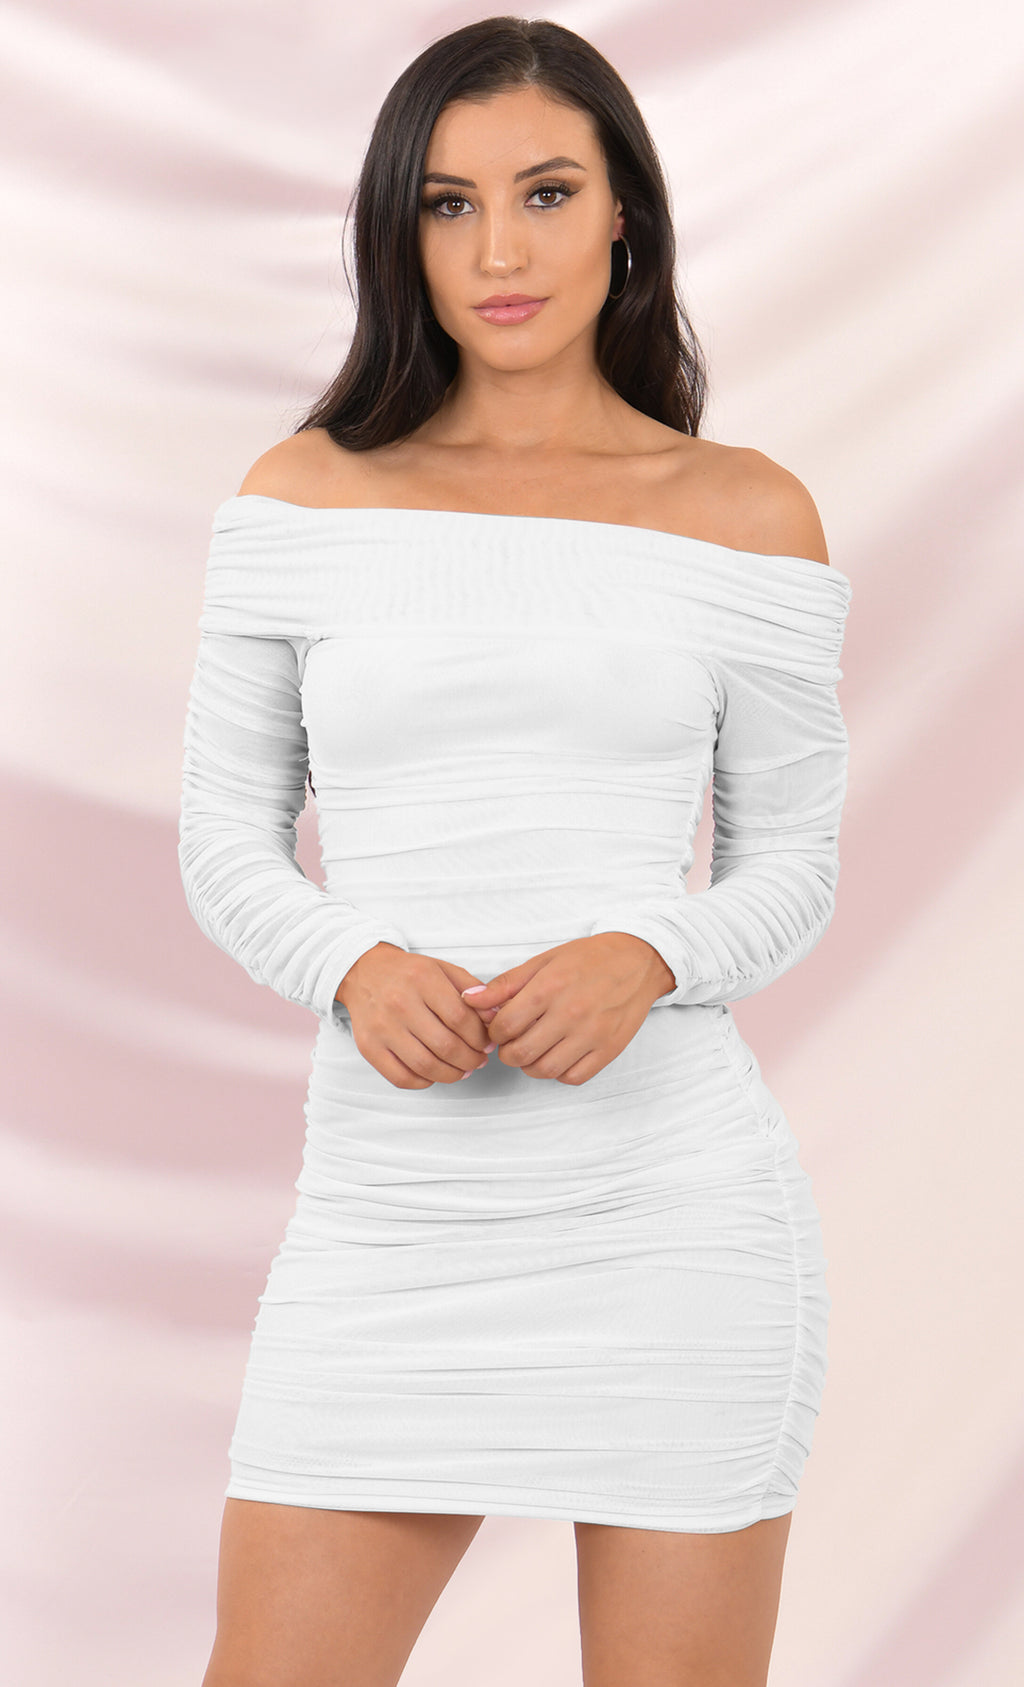 Soft Petals White Ruched Off the Shoulder Sheer Mesh Bodycon Long Sleeve Mini Dress - 2 Colors Available